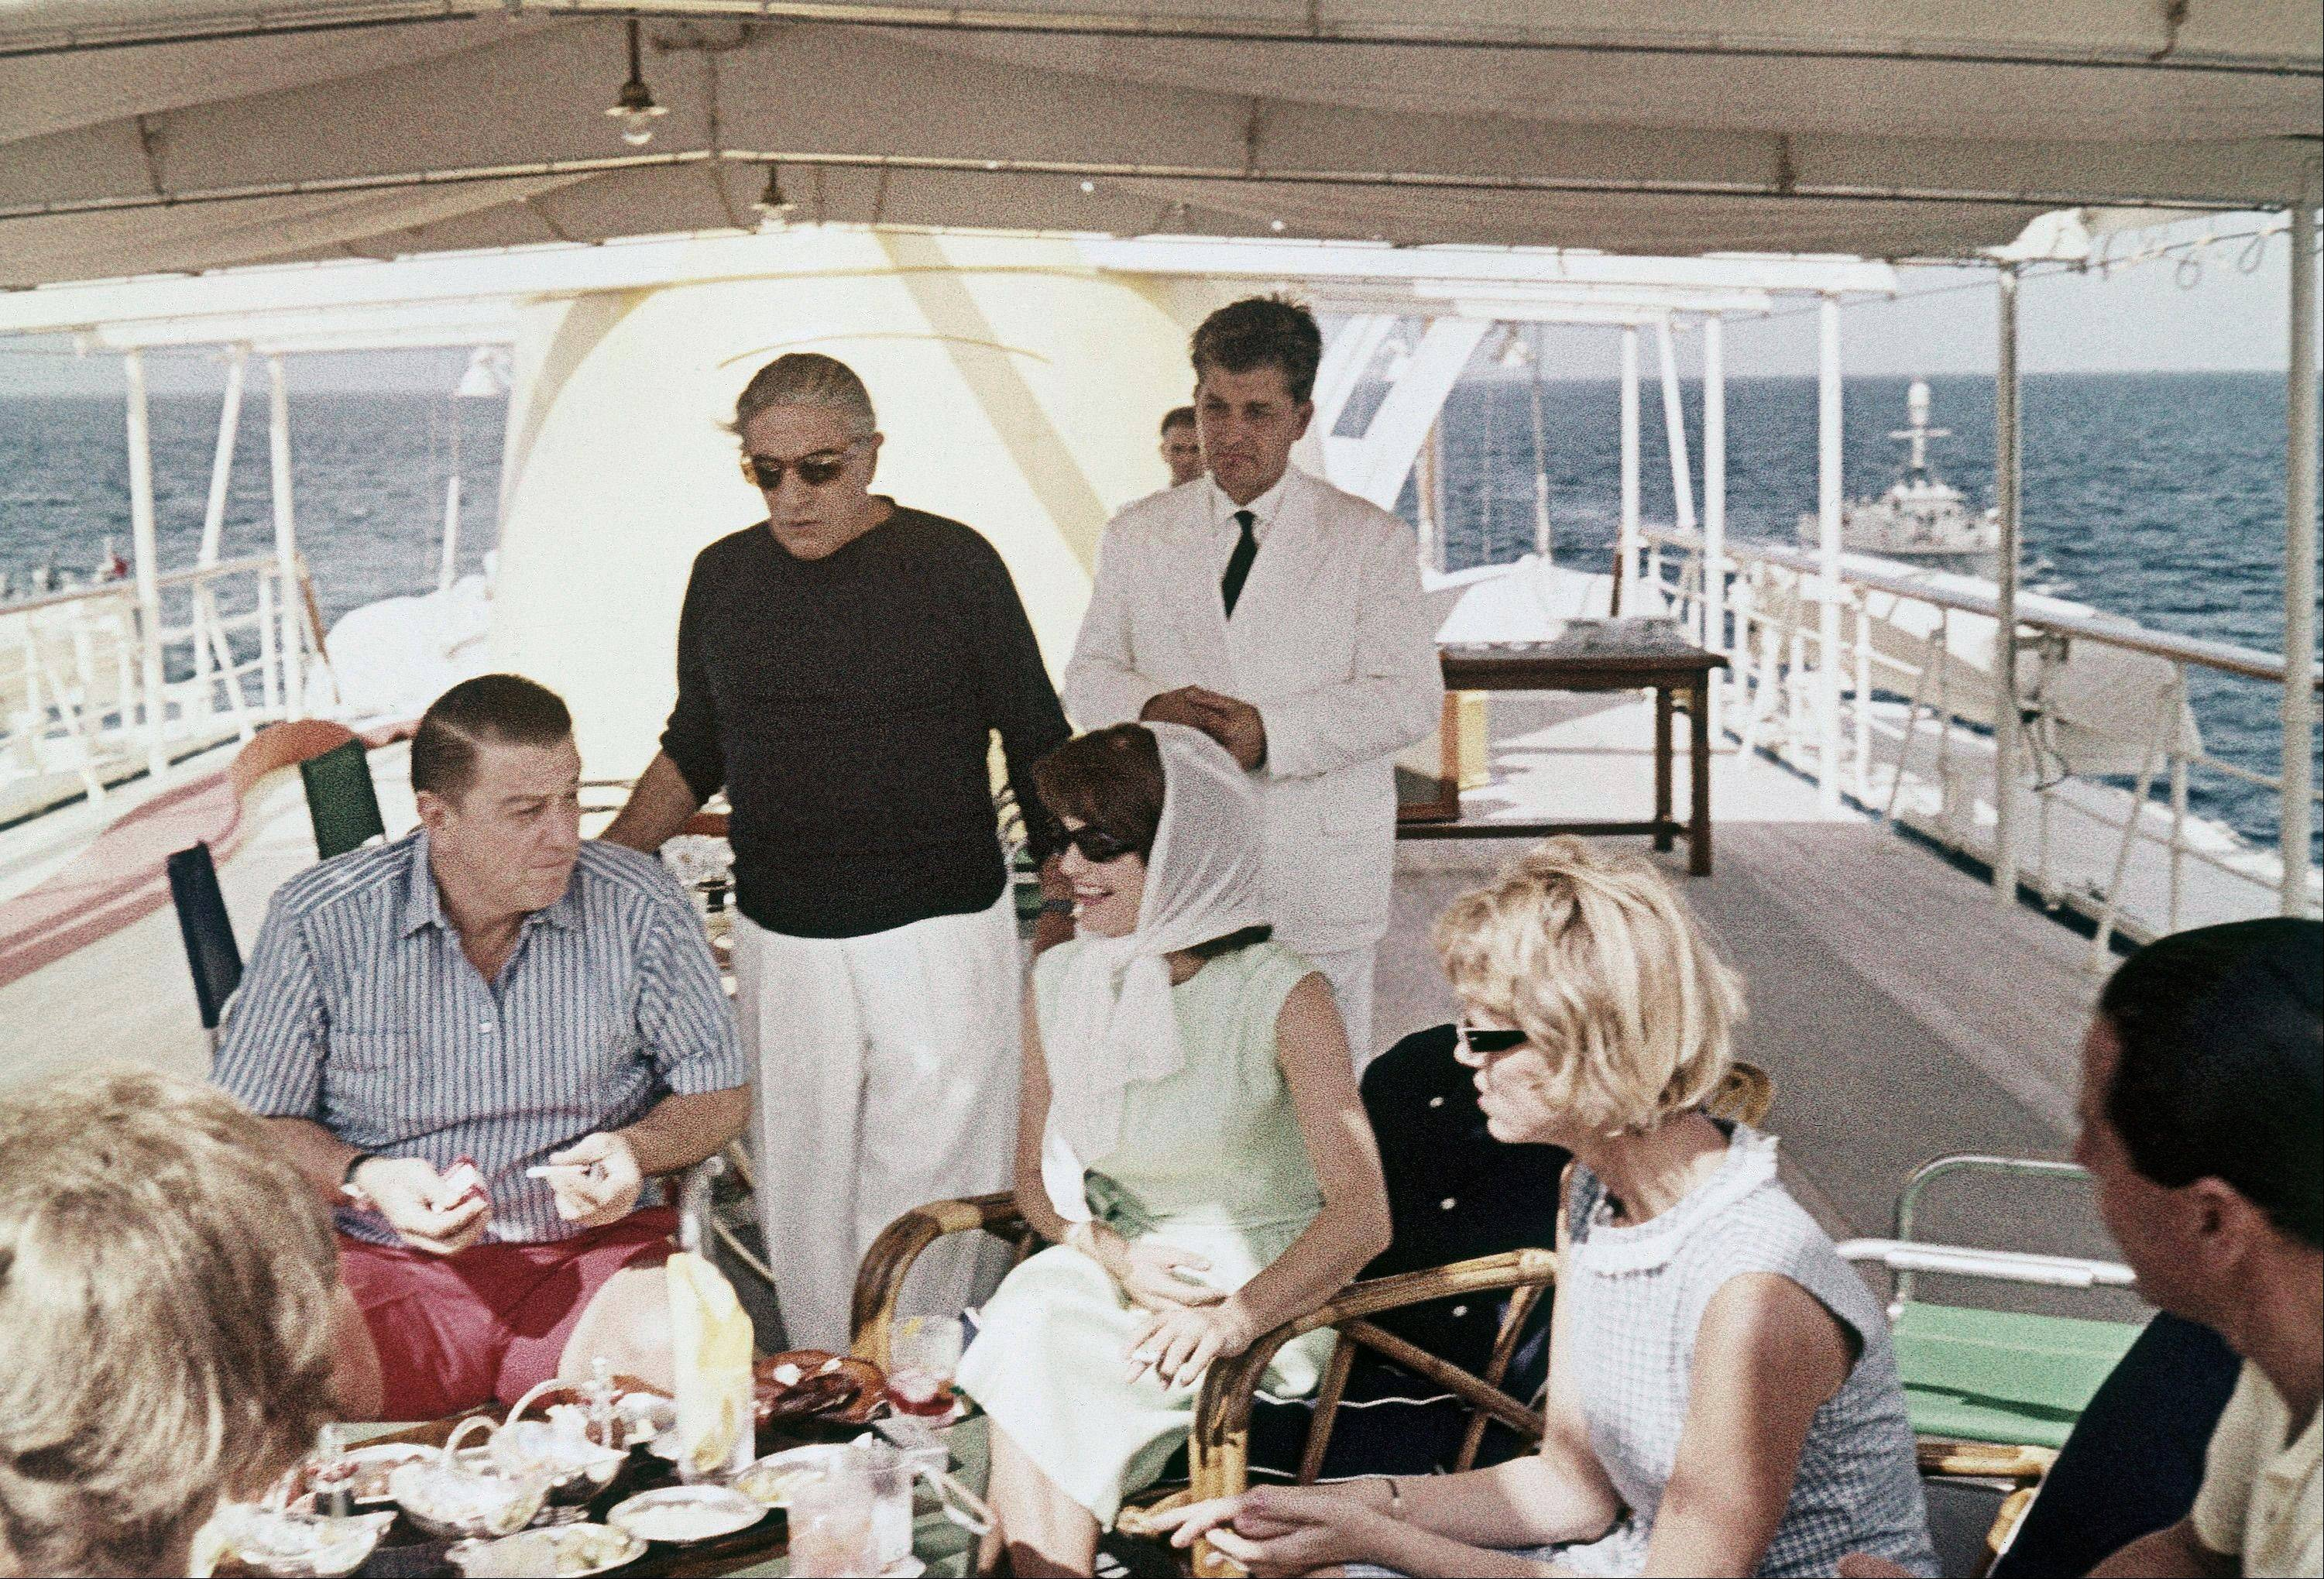 This is a 1963 file photo of Aristotle Onassis, standing with black shirt, as he joins, Jaqueline Kennedy and Franklin Roosevelt Jr., on board the Onassis yacht Christina in the Mediterranean.